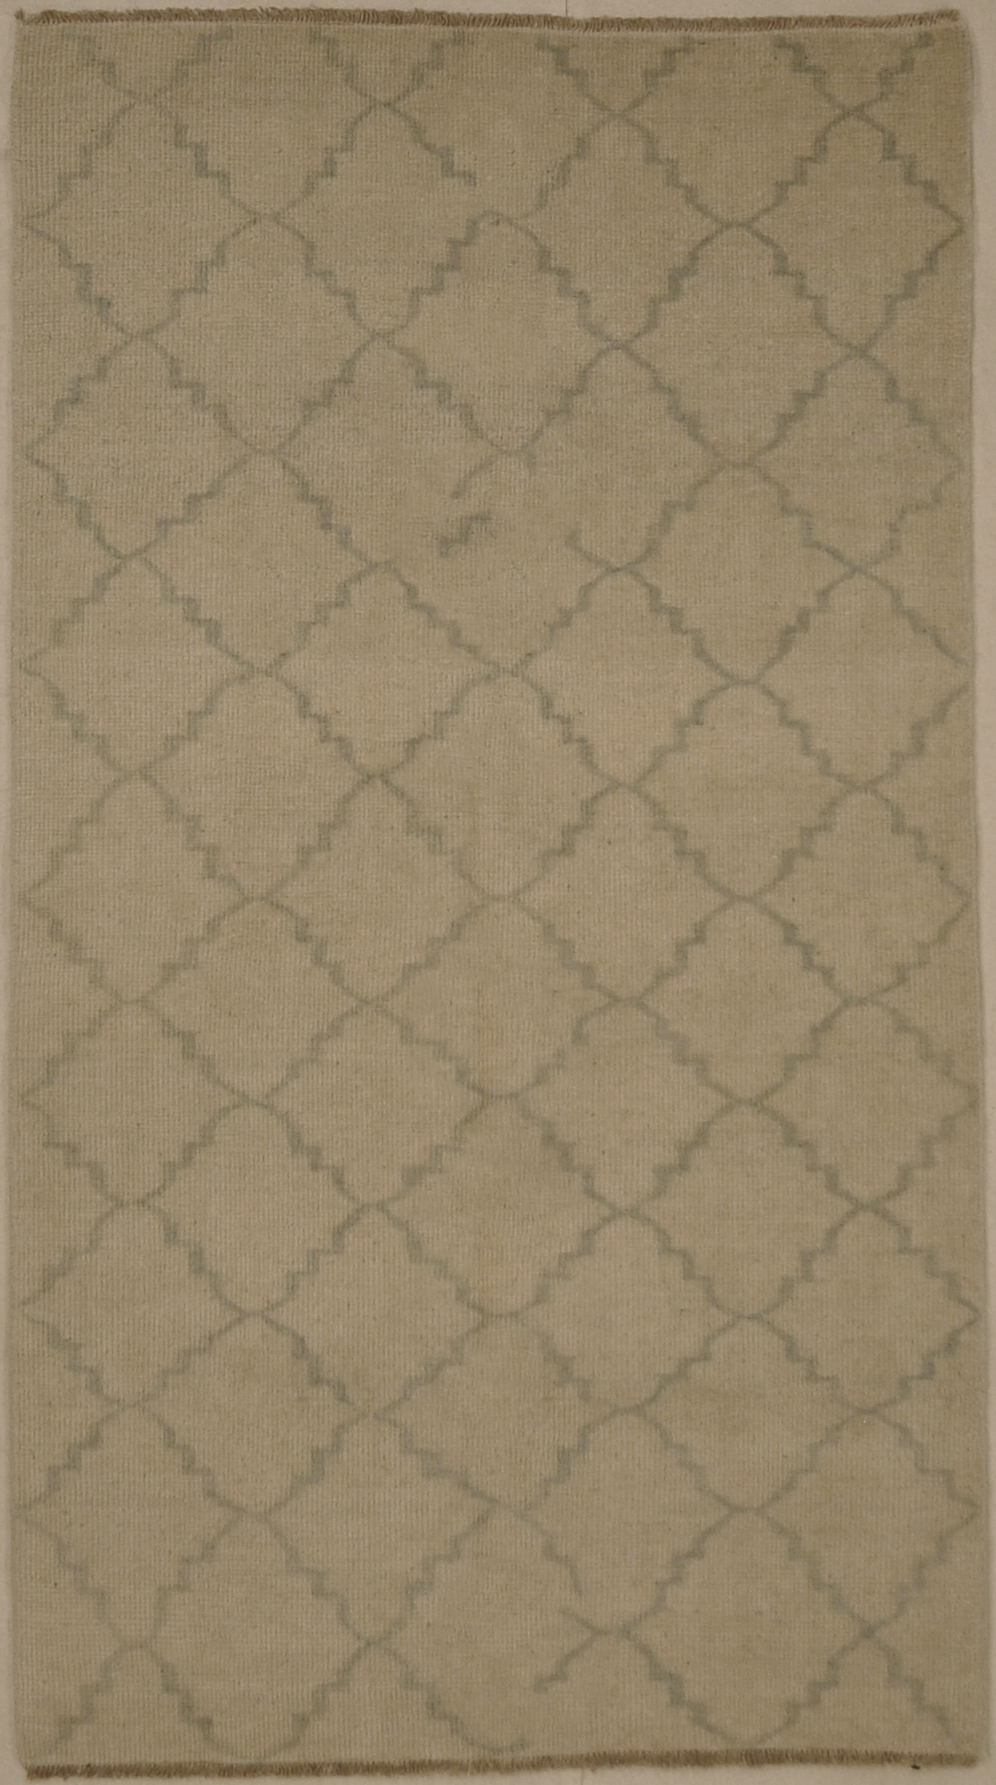 Blue and Beige Modern Trellised Rug. A piece of genuine woven carpet art sold by the Santa Barbara Design Center, Rugs and More.